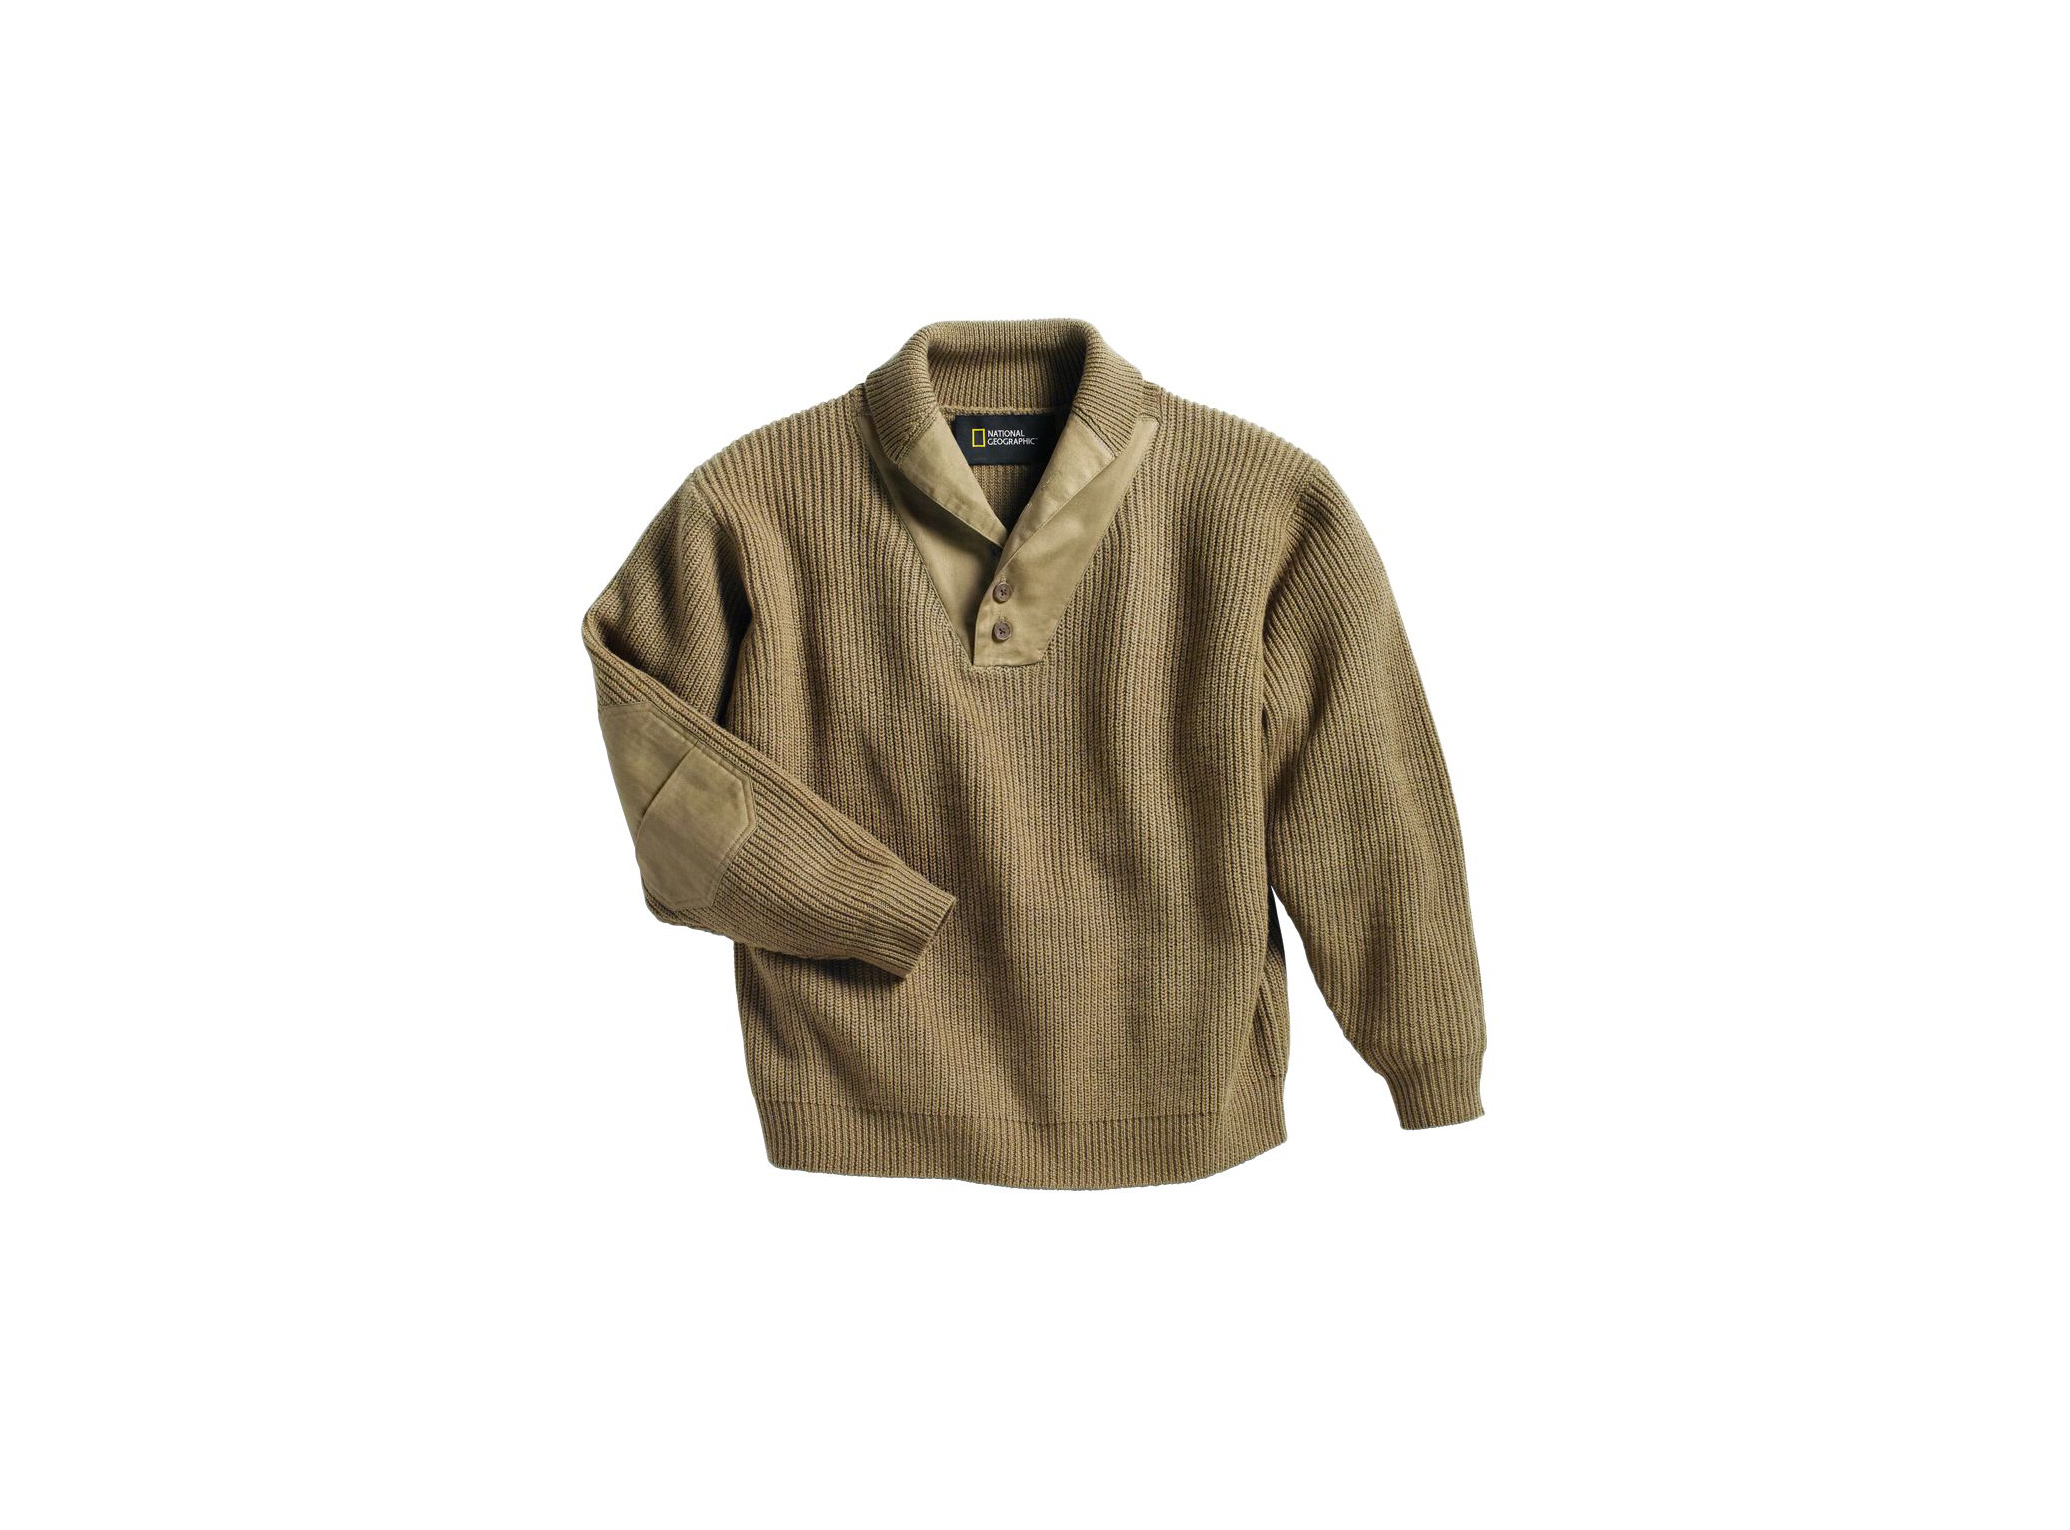 Wool WWII era Military Sweater The Vox 2015 Holiday Gift